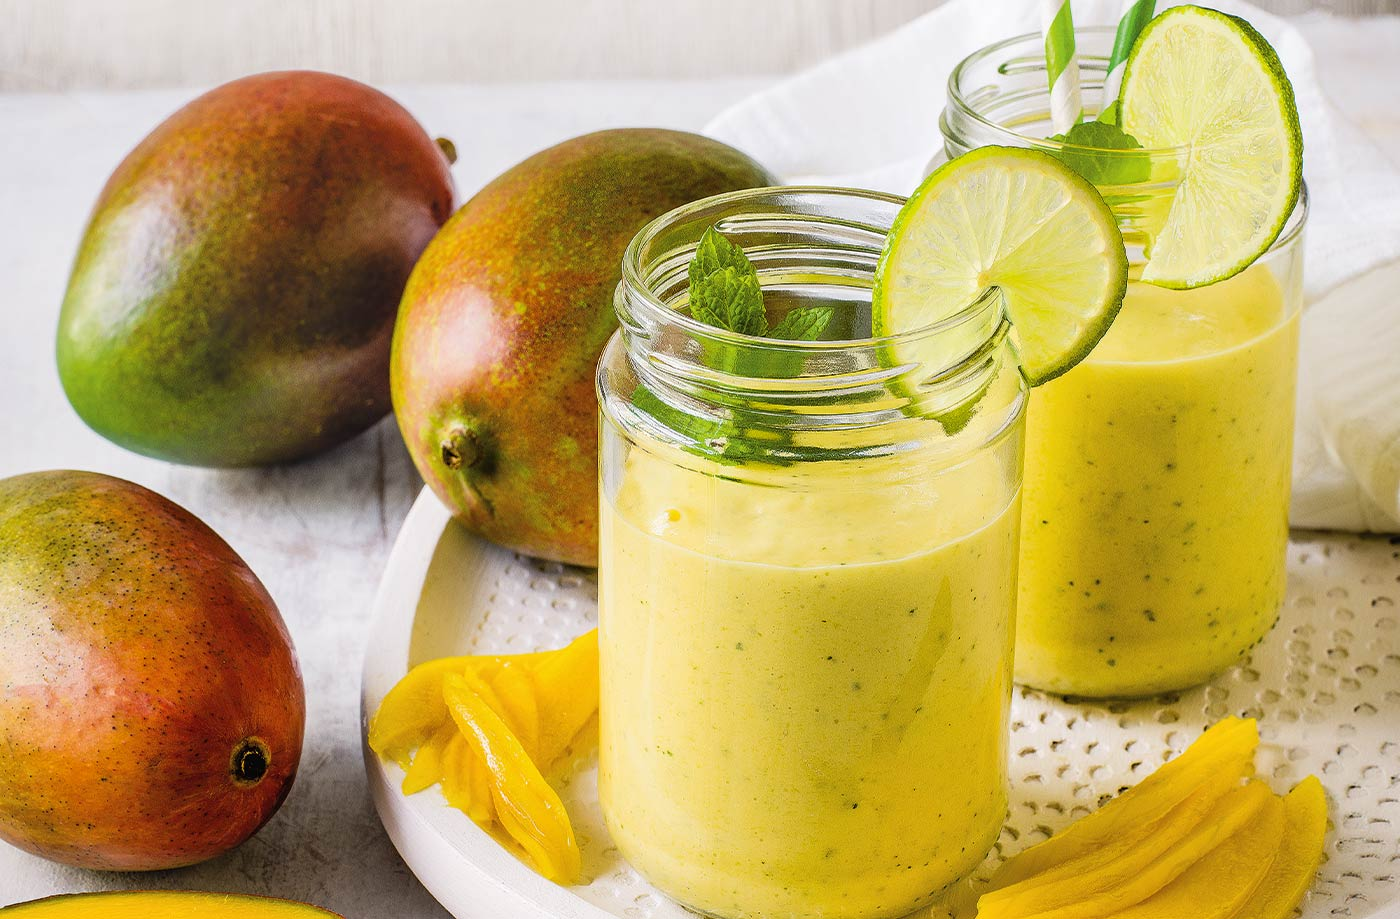 Lime and mango smoothie recipe